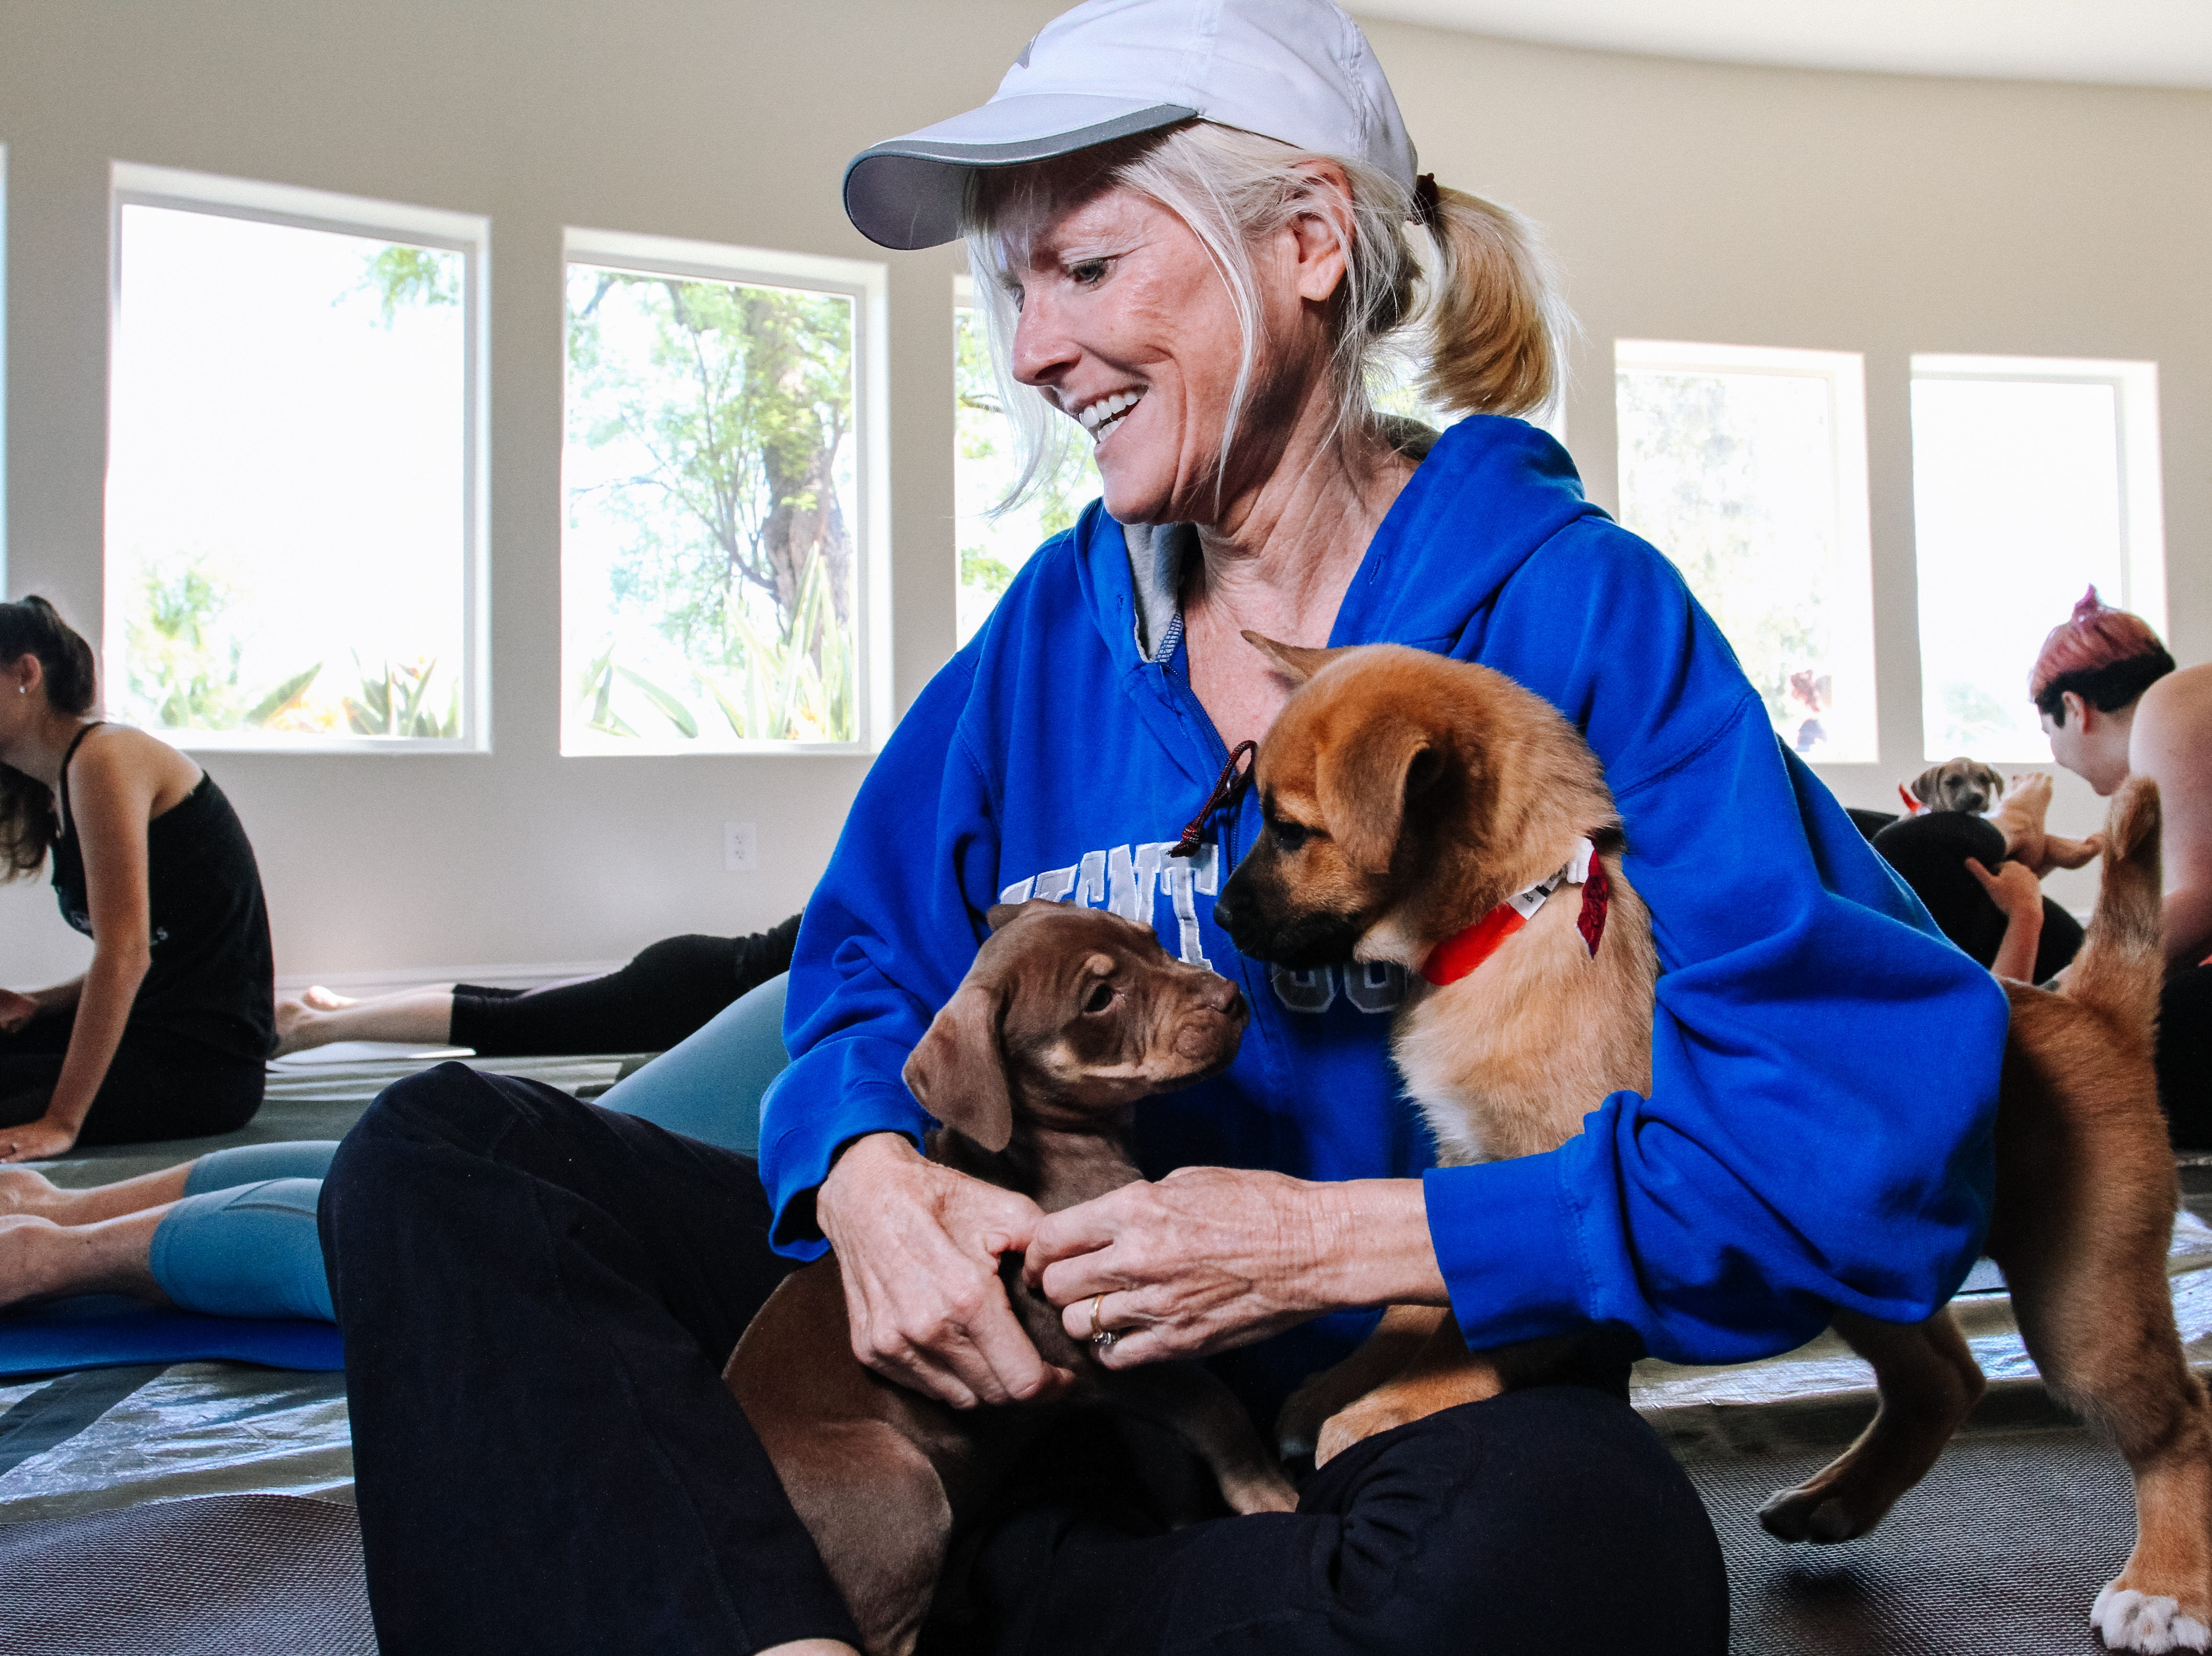 Mary Beth Thomas plays with puppies at Puppies, Pilates and Prosecco, an event hosted by Almost There Foster Care at the Wrigley Mansion in Phoenix on April 13, 2019.